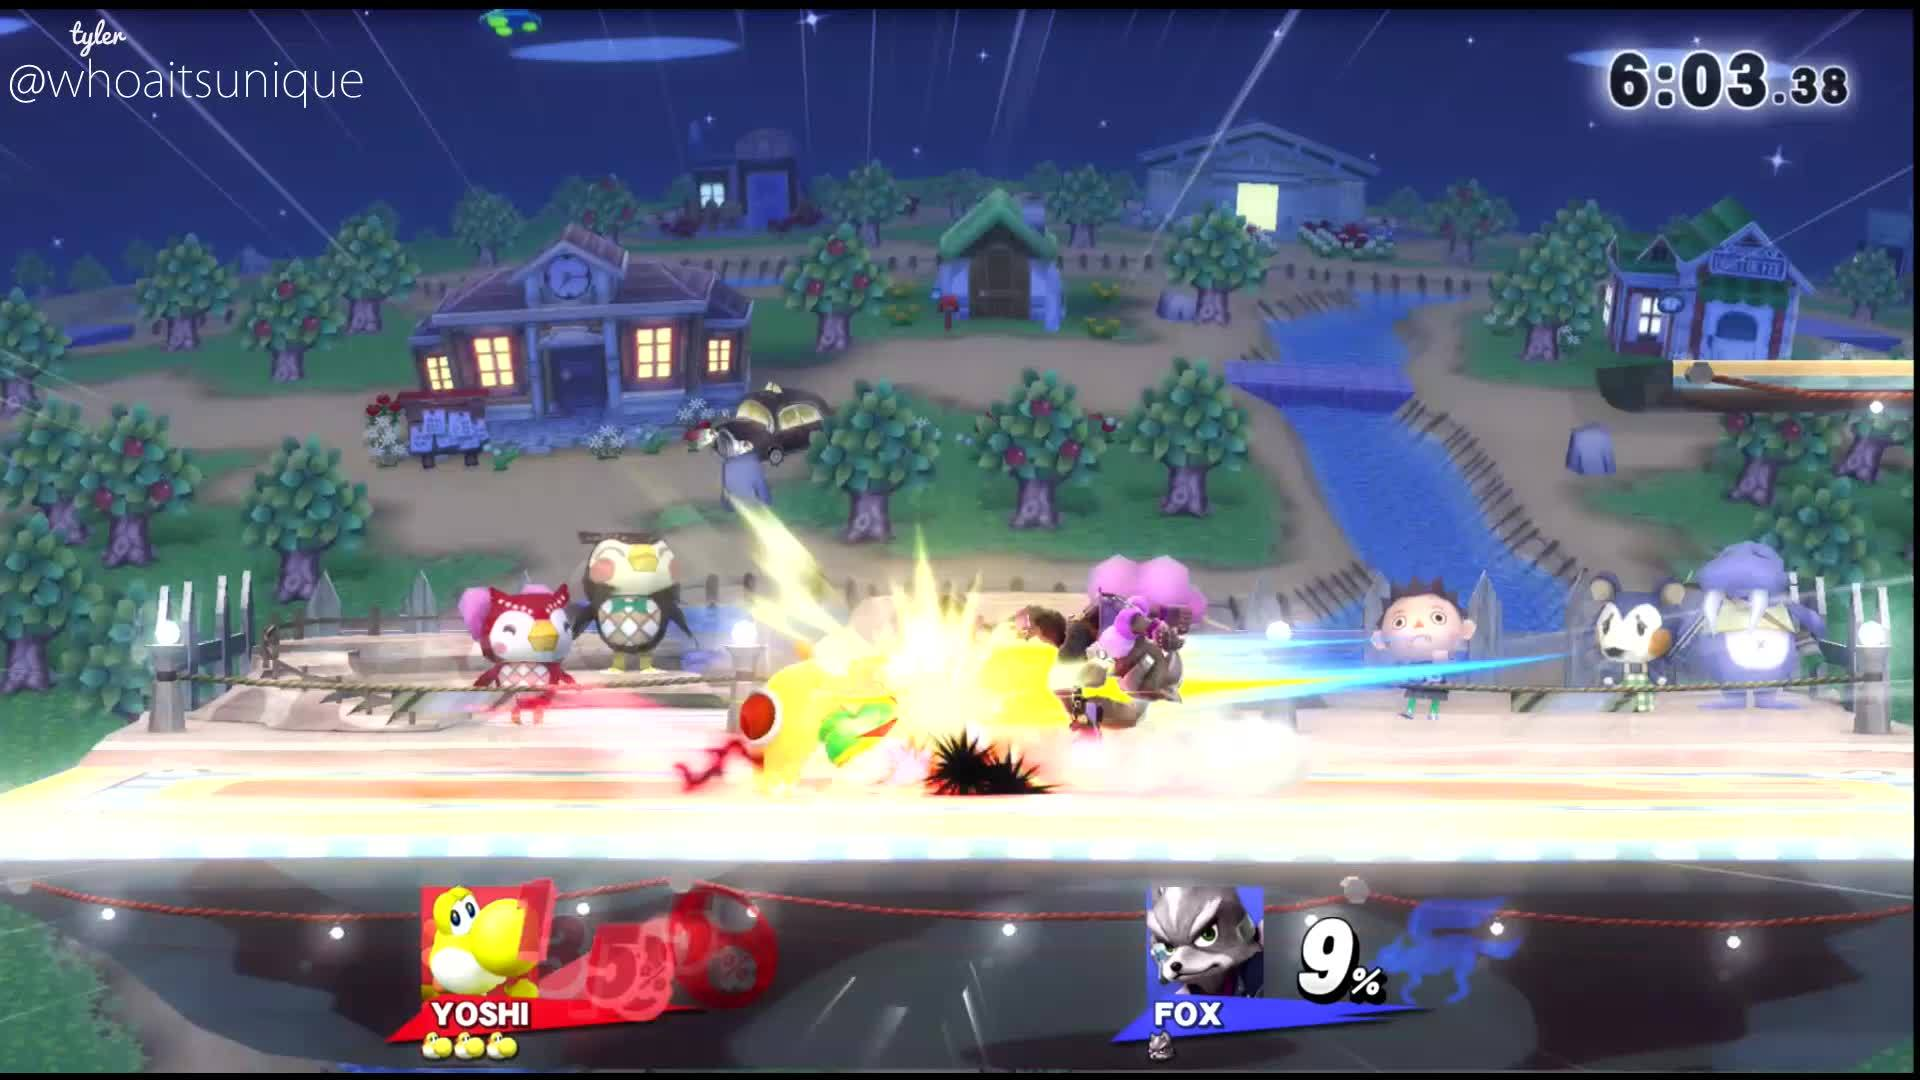 Anther Ladder hype yoshi edgeguard - [anther's ladder] : unique (yoshi) gif keepitunique